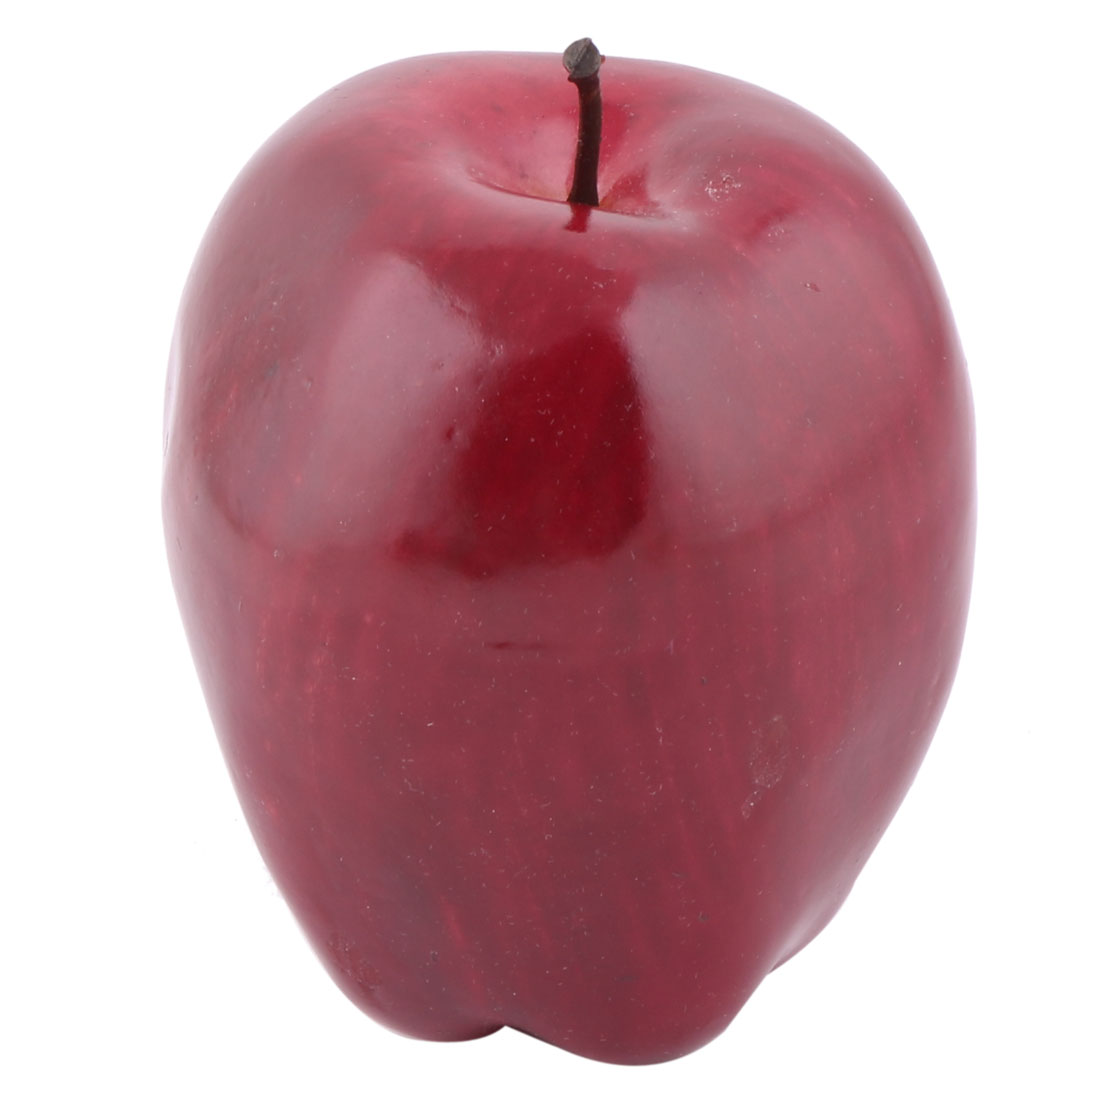 Unique Bargains Home Office Ornament Foam Handmade Simulation Artificial Fruit Apple Model Red - image 2 of 2